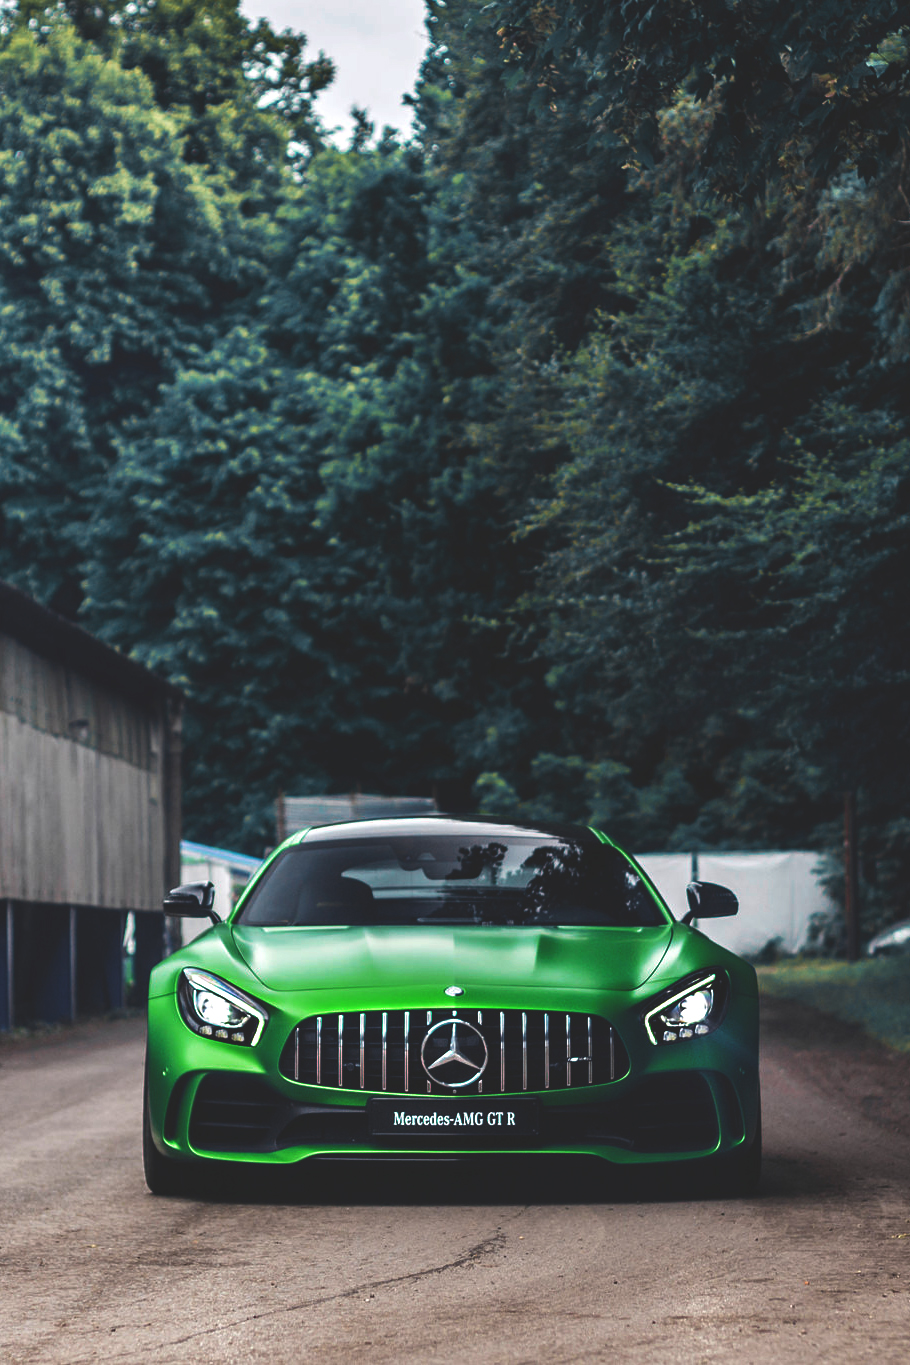 mercedes amg gtr green sportscar competition race road asphalt motion trees